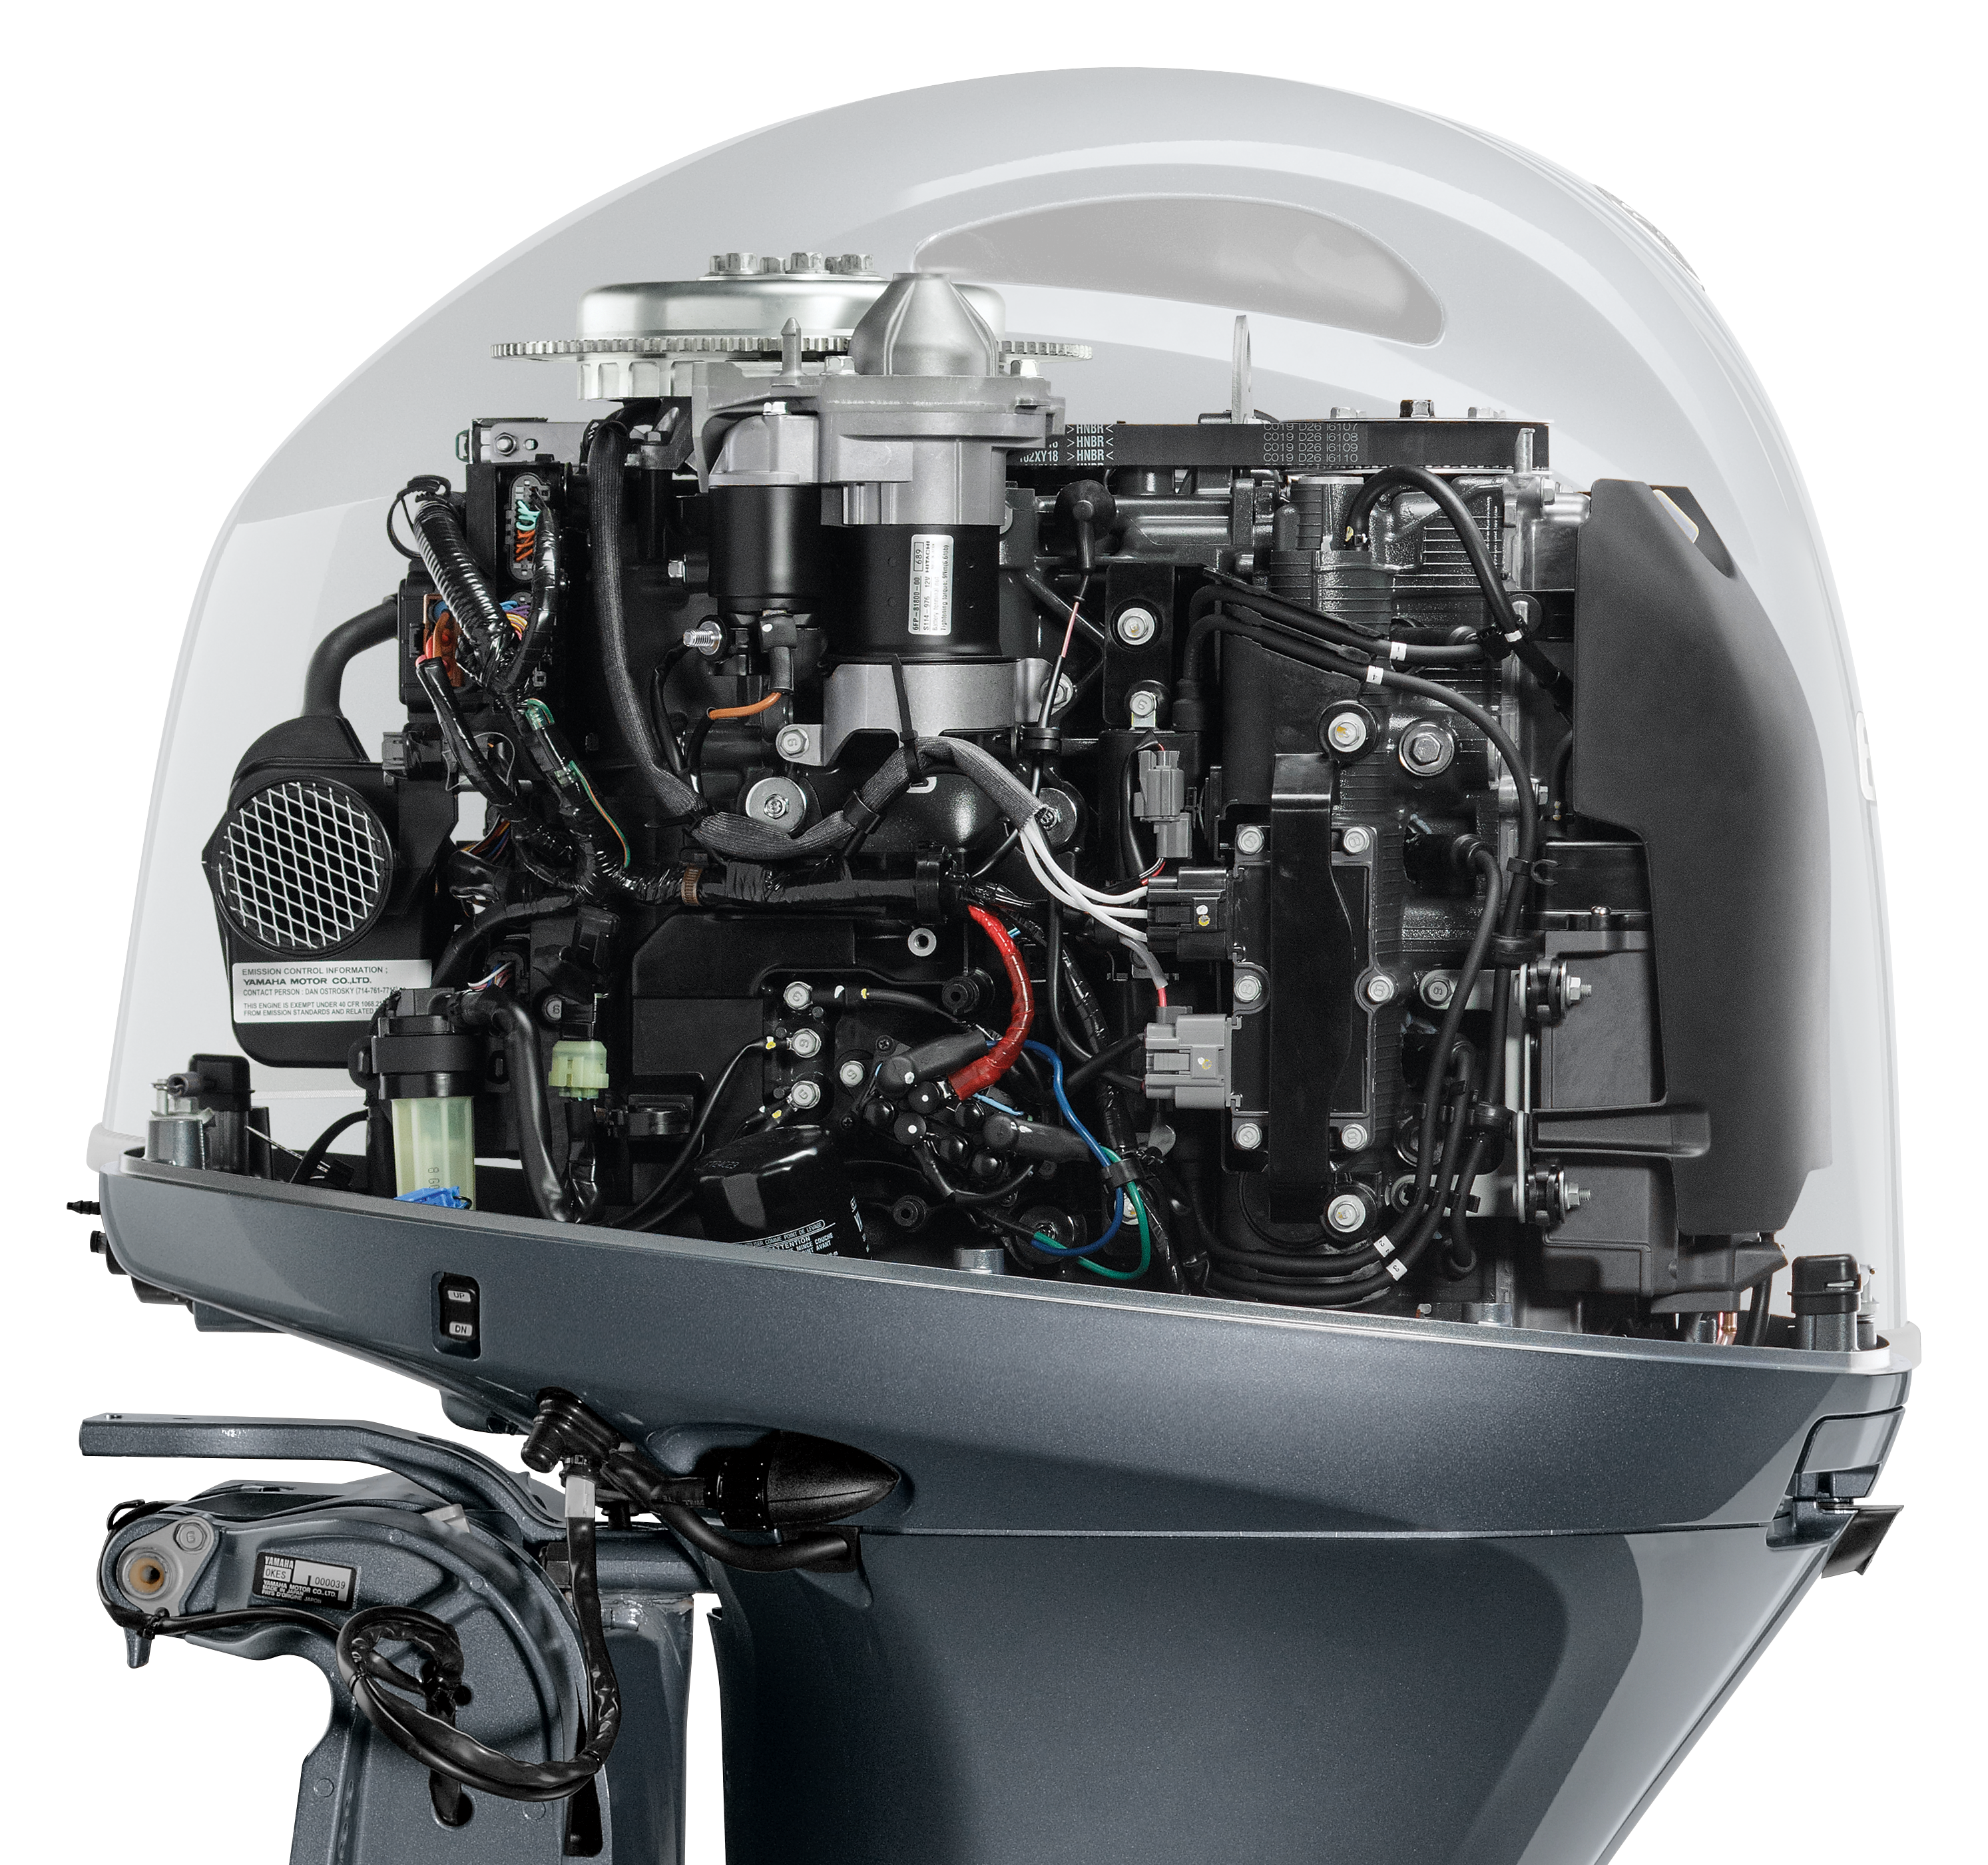 Outboard without cowling